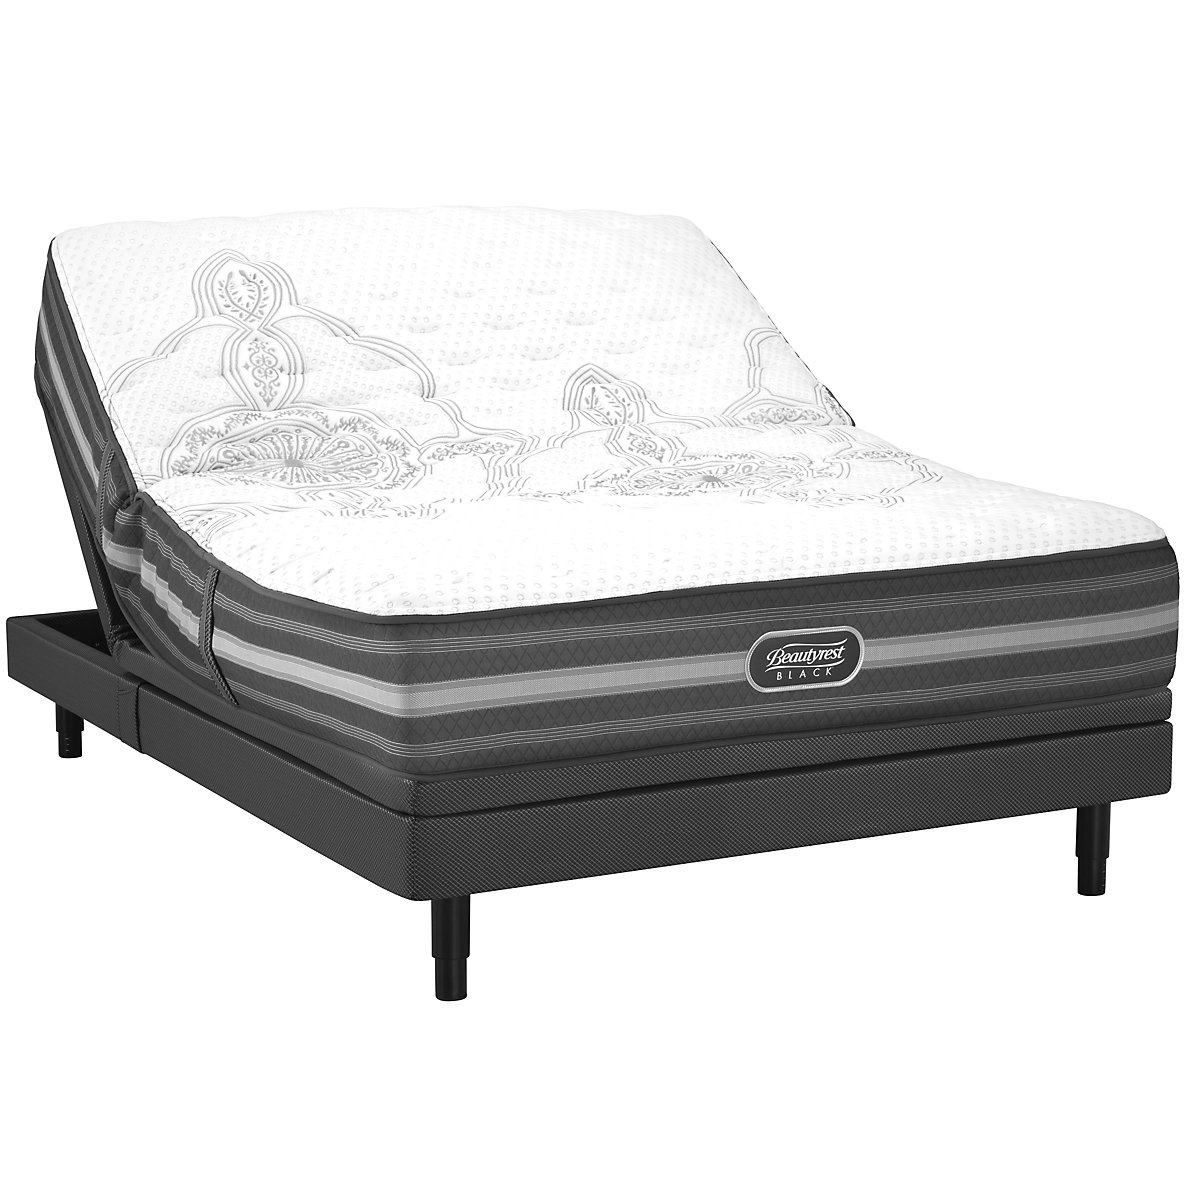 Beautyrest Black Calista Extra Firm SmartMotion™ 2.0 Adjustable Mattress Set